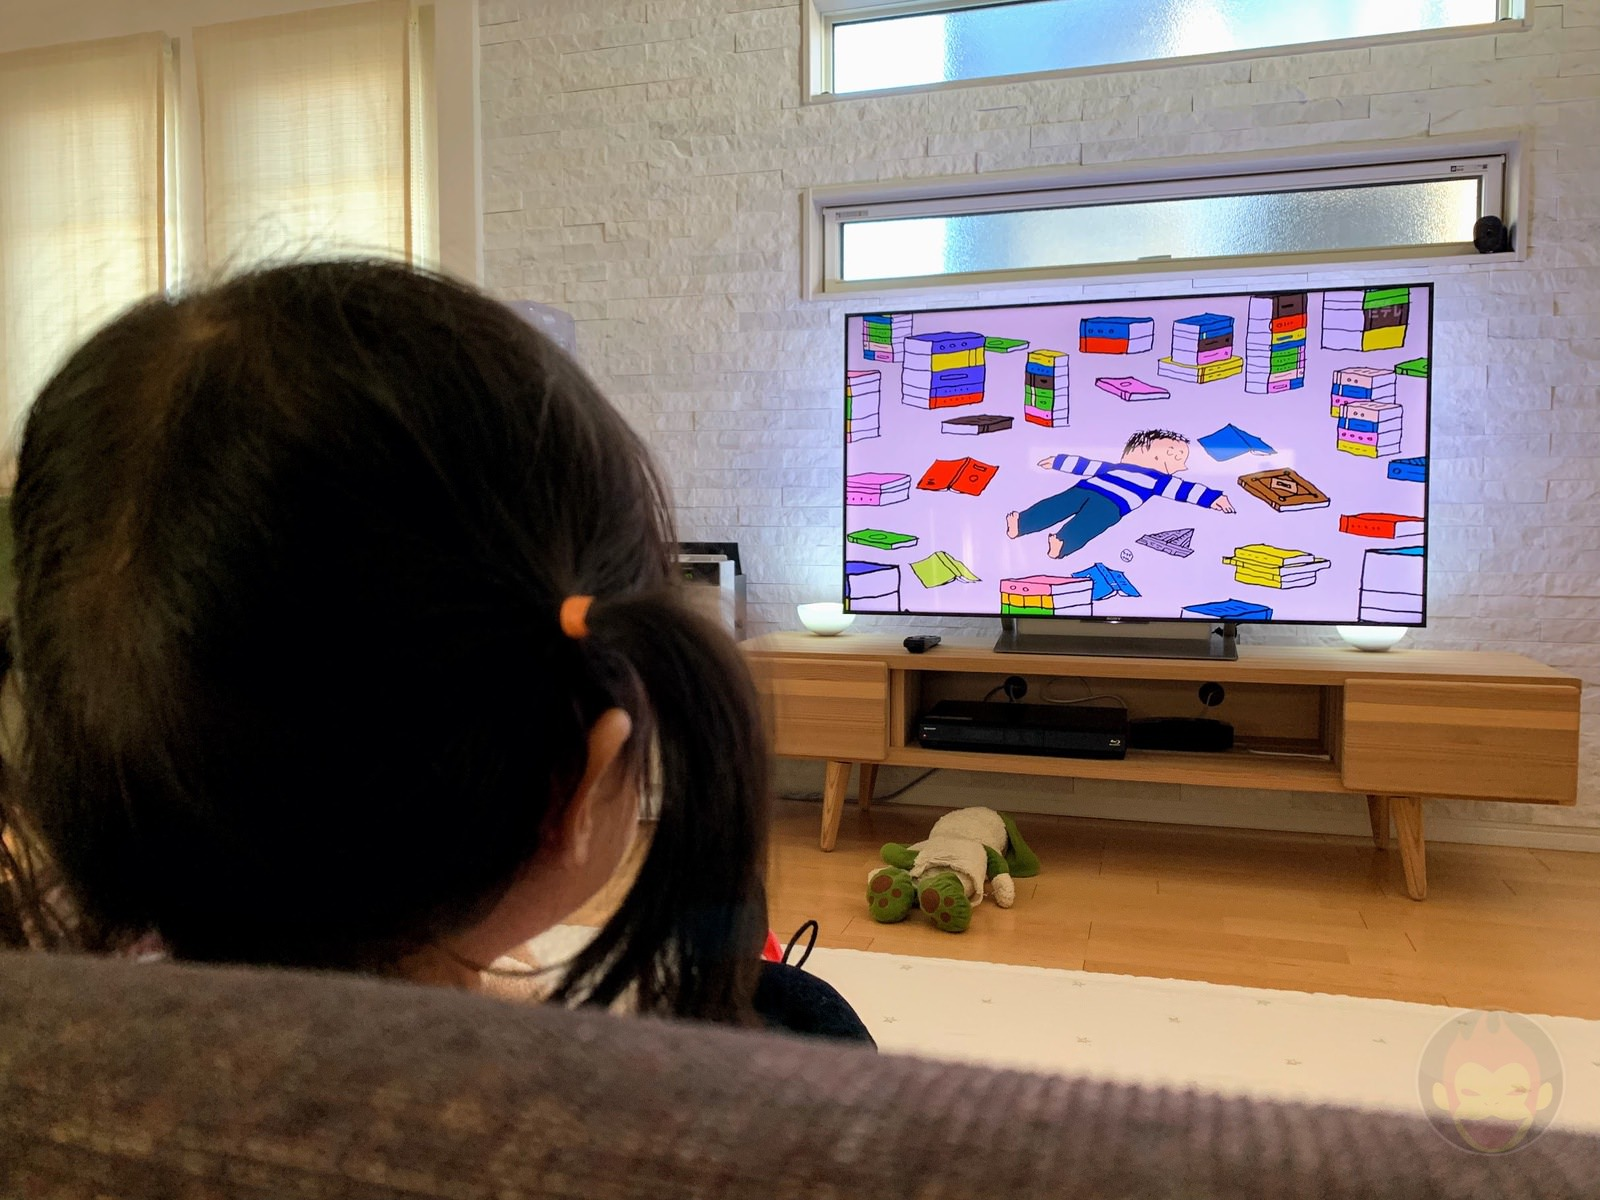 TV is not always helpful for childcare 01